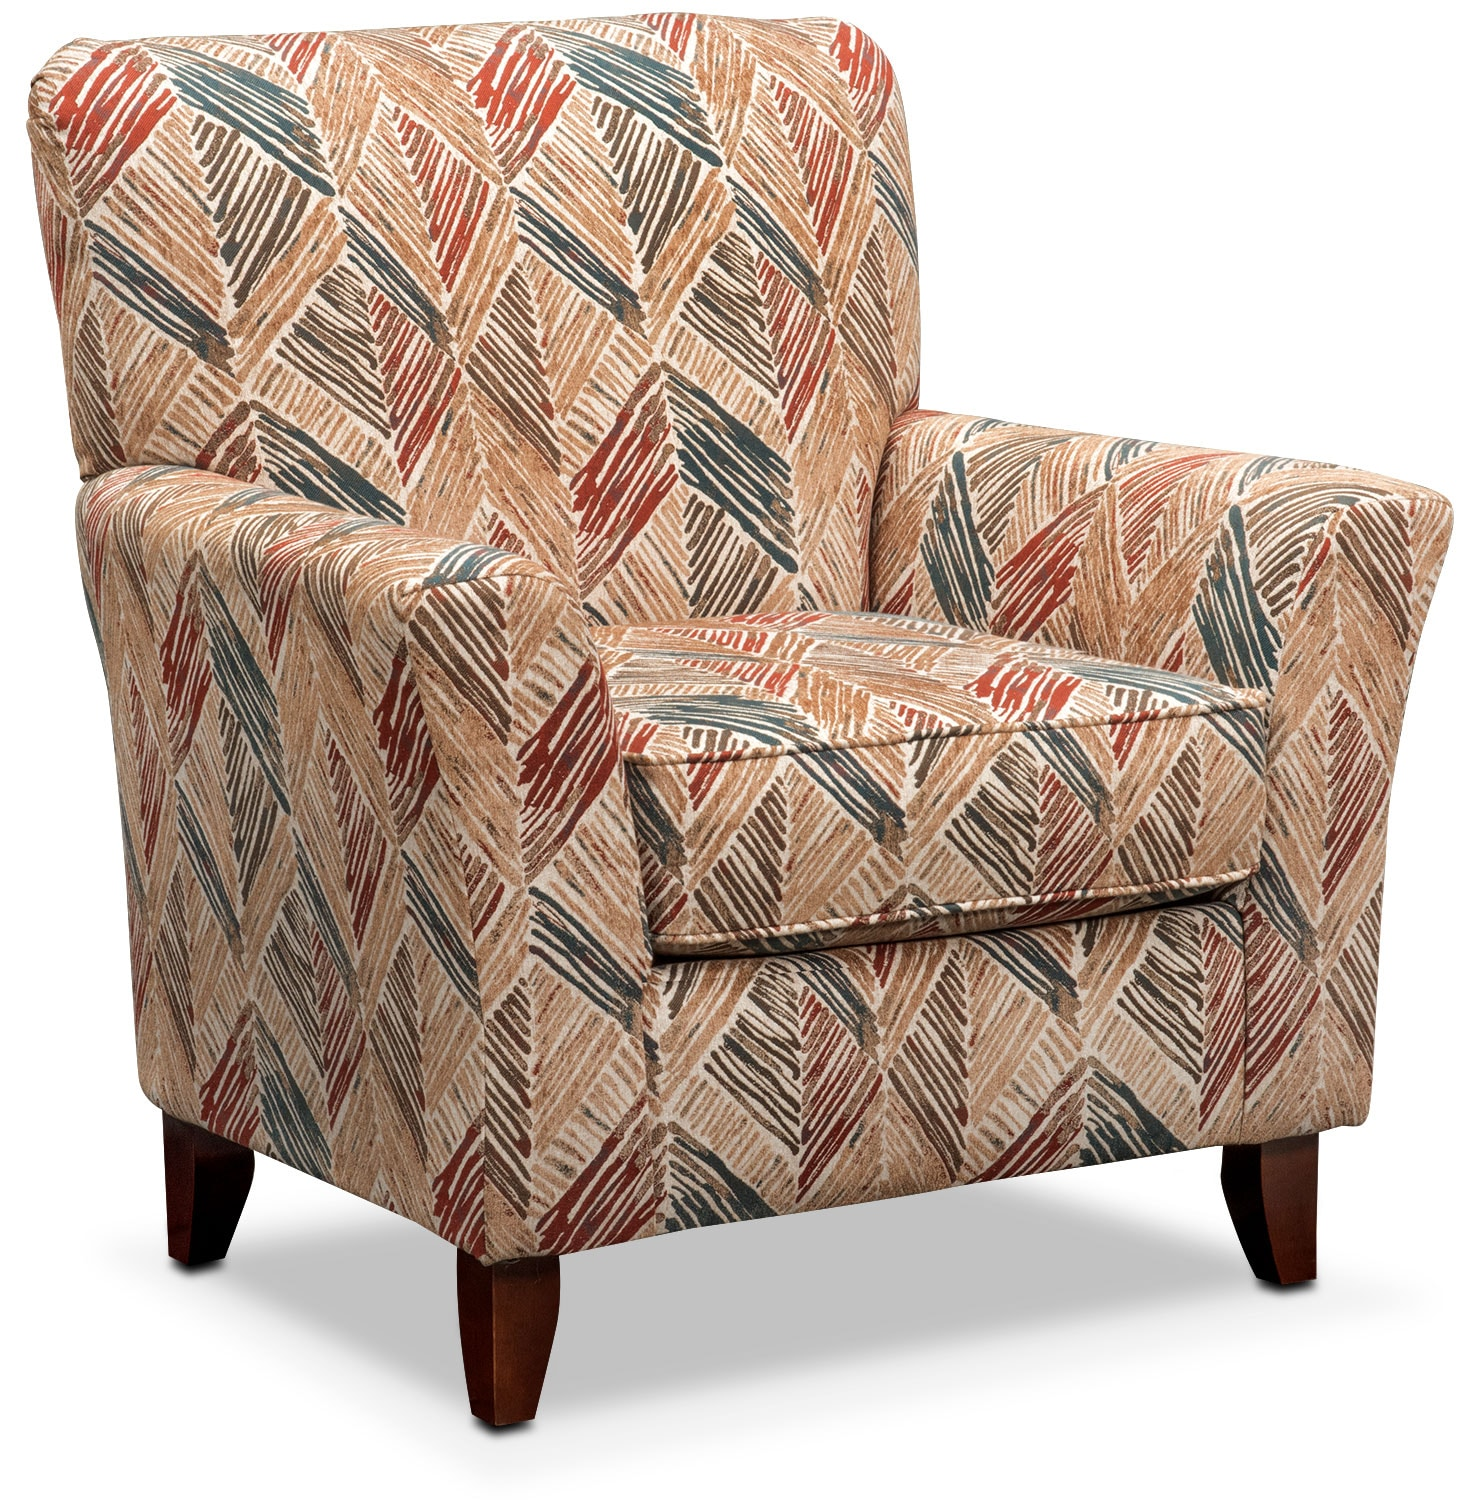 Lakelyn Accent Chair - Cocoa Multi